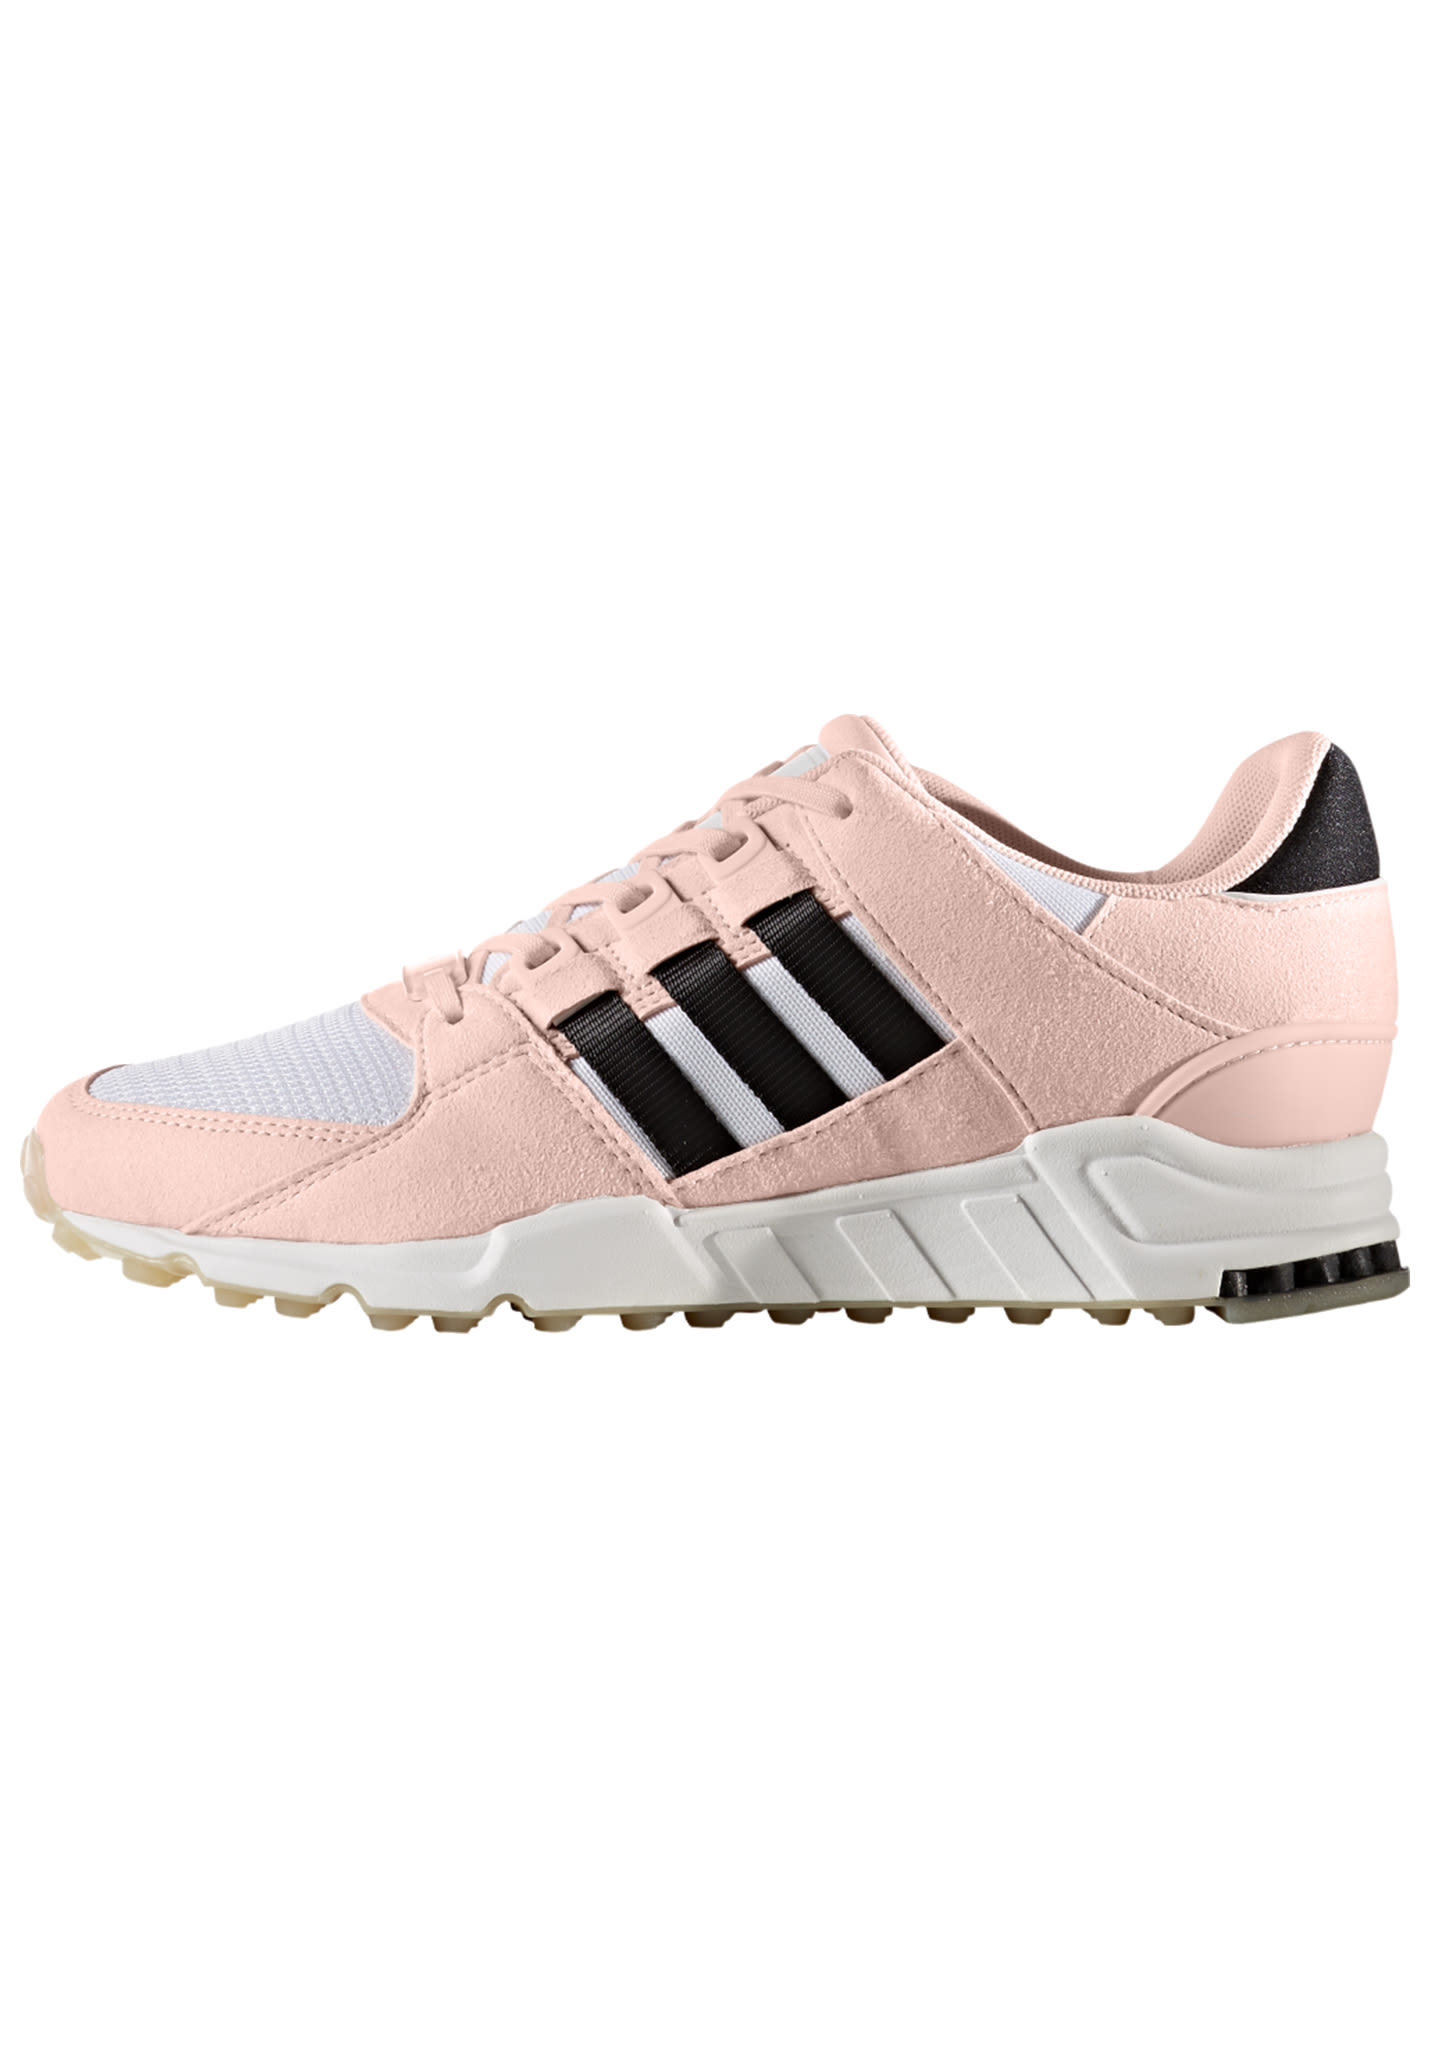 competitive price 14d5c aee66 ADIDAS ORIGINALS EQT Support RF - Sneakers for Women - Pink